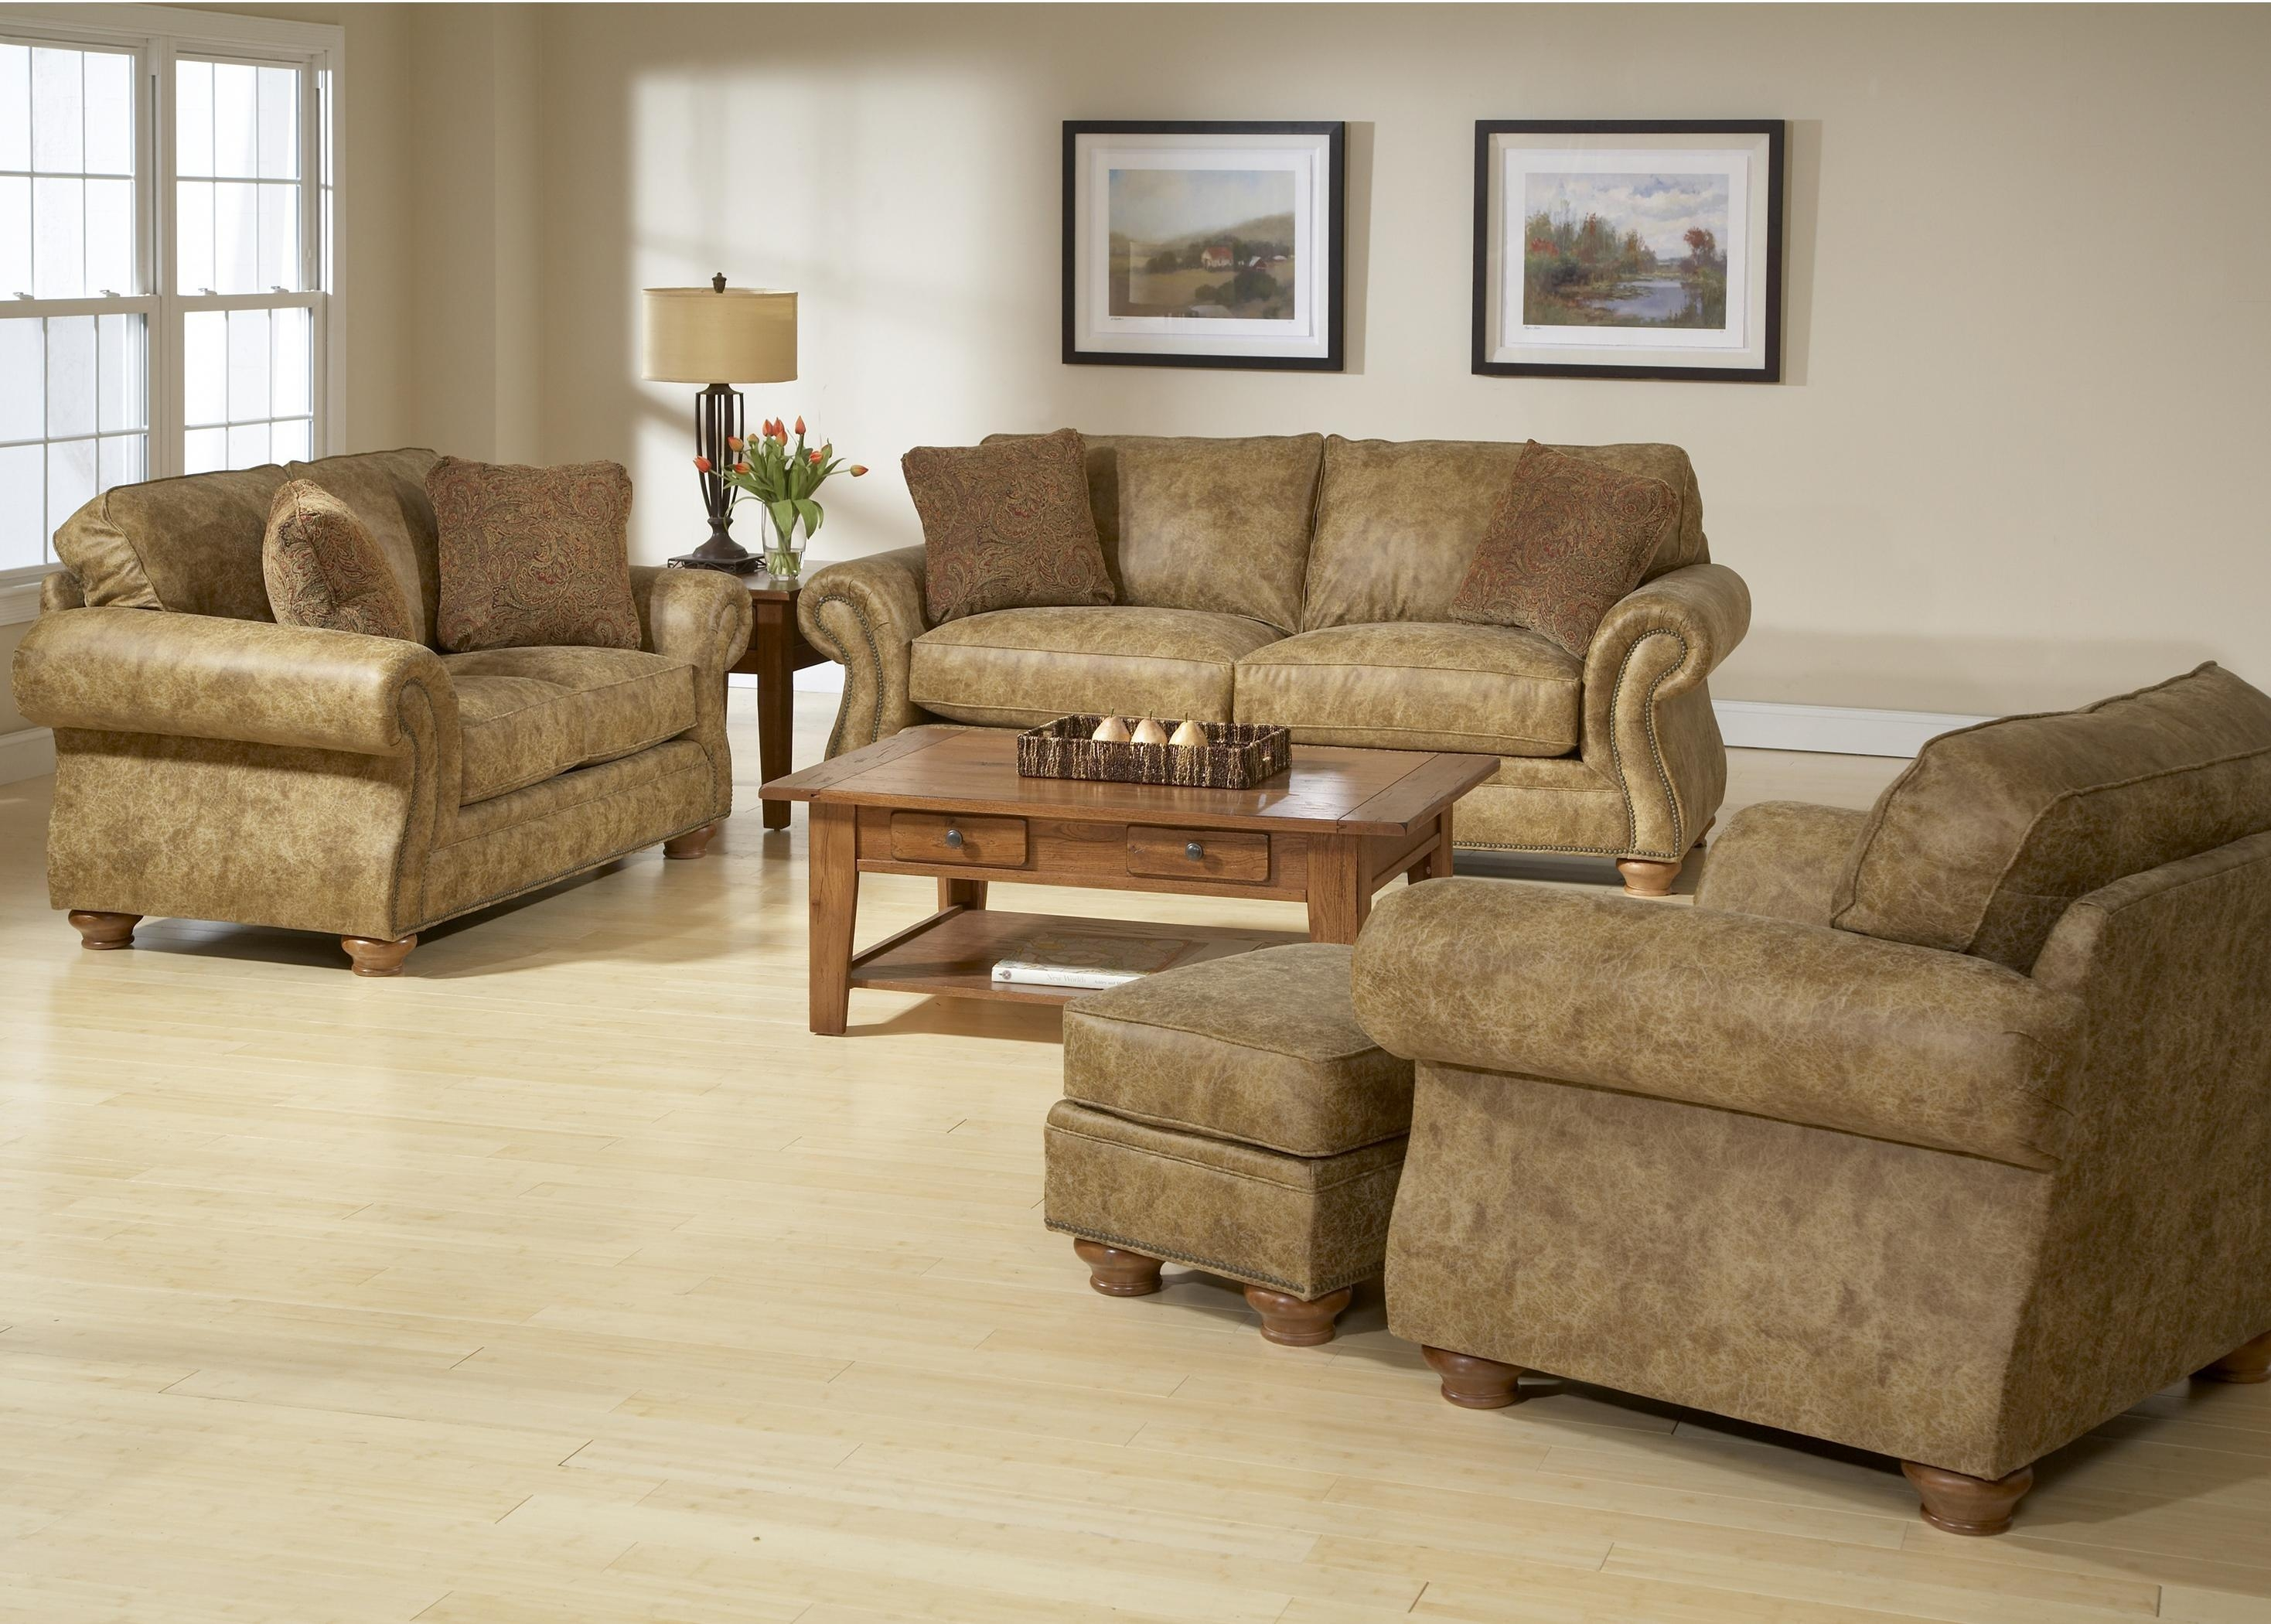 Broyhill Furniture Laramie 3 Piece Sectional Sofa | Broyhill Of Intended For Broyhill Sofas (View 15 of 20)